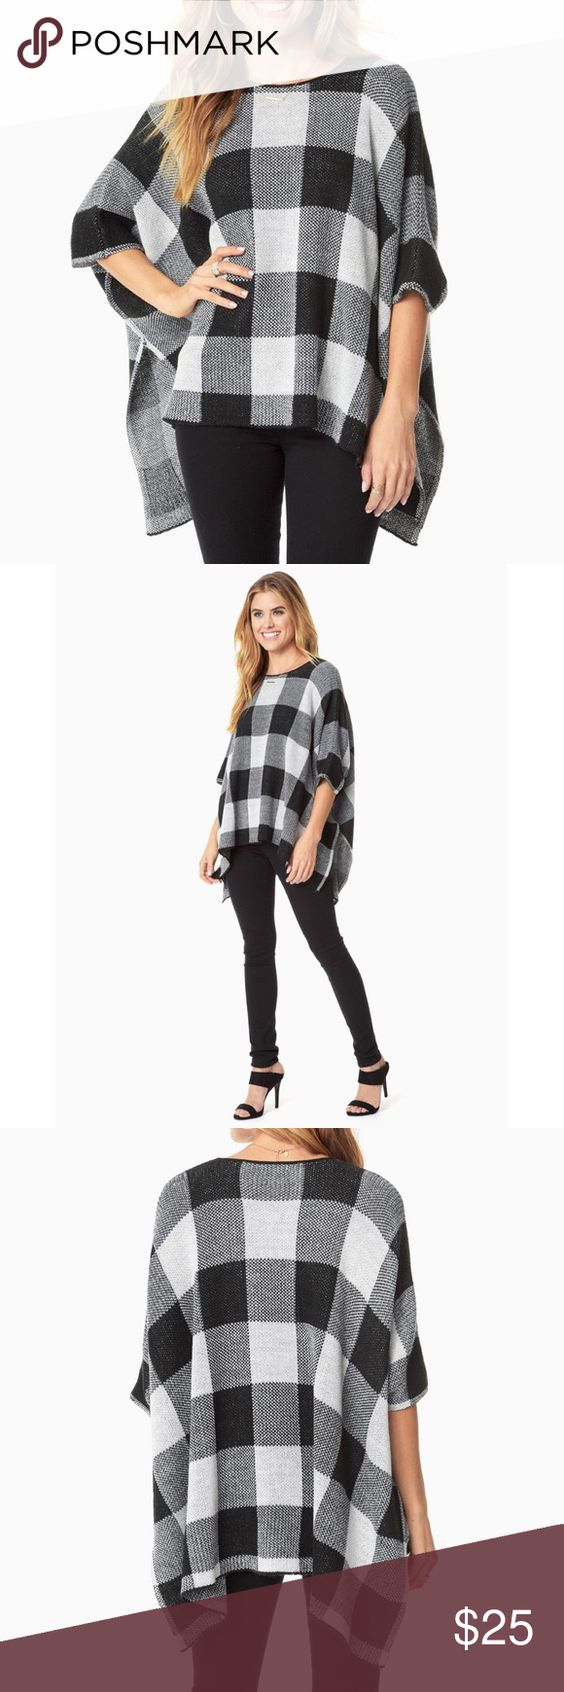 Oversized Gingham Poncho NWT. Never worn. Excellent condition. Lightweight. NO TRADES/PAYPAL Charming Charlie Sweaters Shrugs & Ponchos